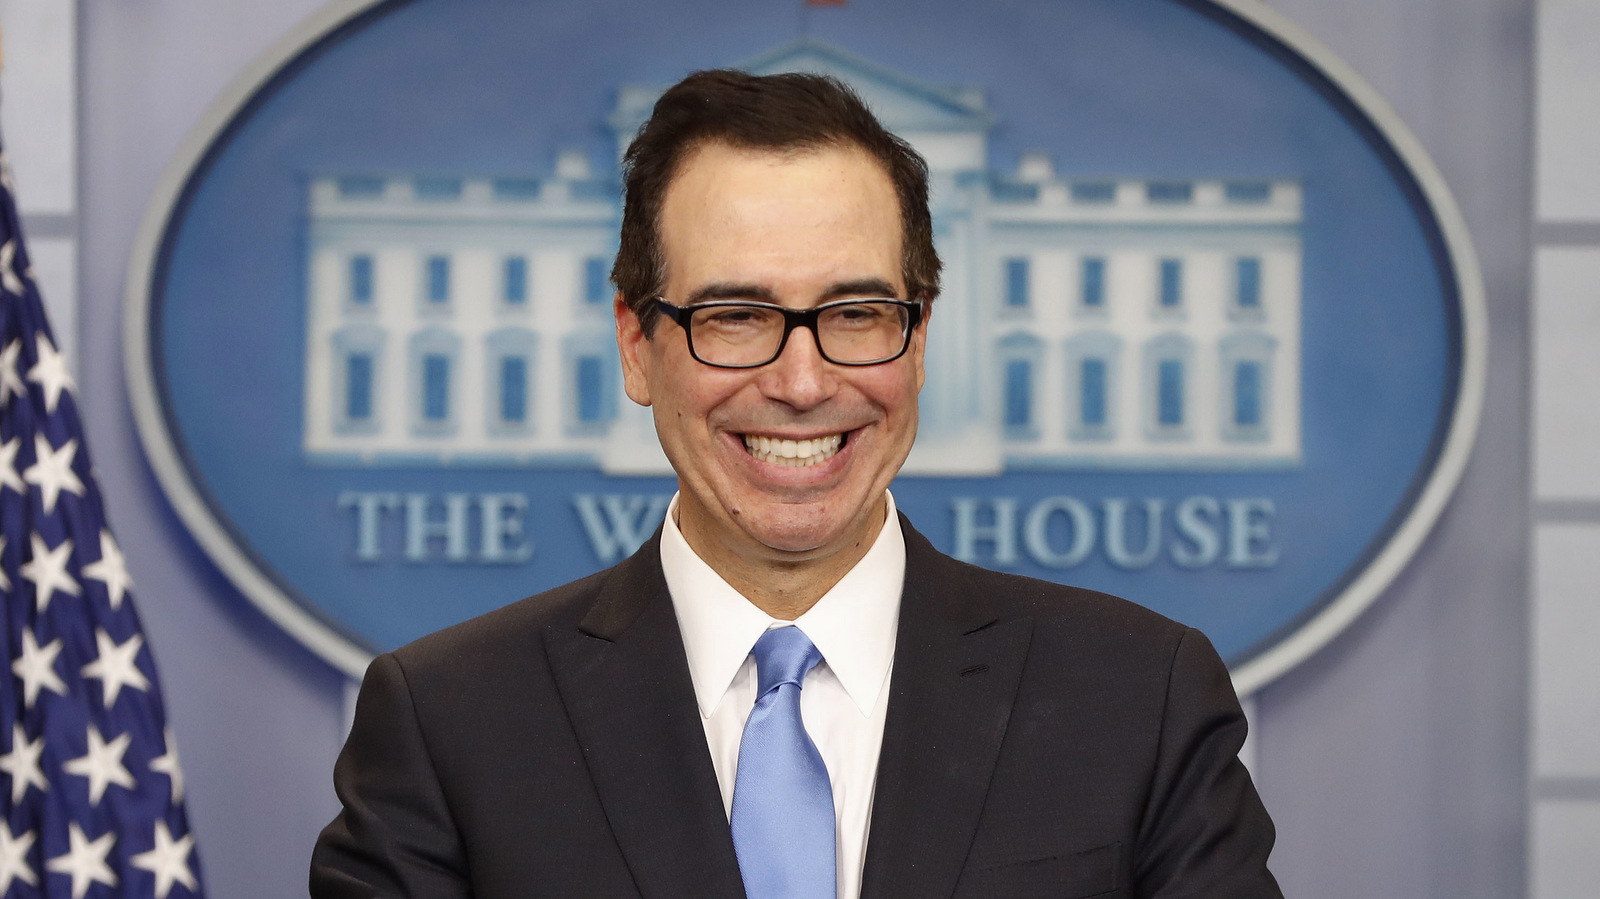 Treasury Secretary Steve Mnuchin smiles while speaking to the media during the daily briefing in the Brady Press Briefing Room of the White House in Washington, Monday, April 24, 2017. (AP/Pablo Martinez Monsivais)